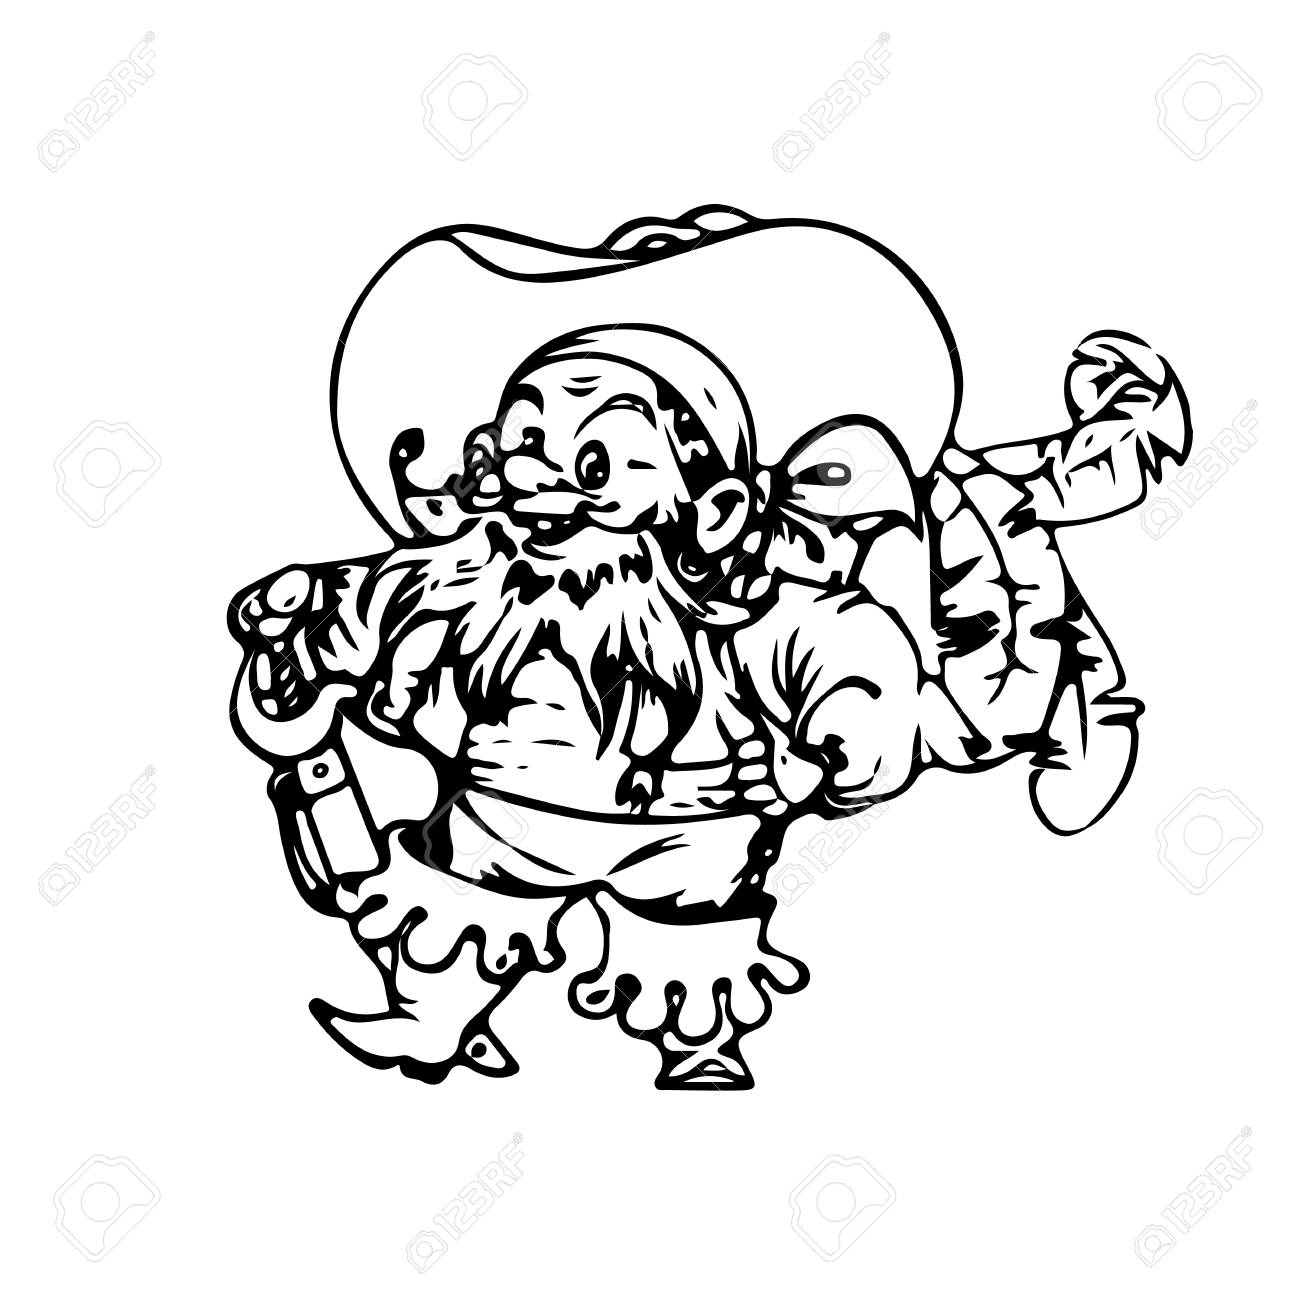 1300x1300 Cheerful Pirate, With A Sword. Silhouette Drawing, Cartoon